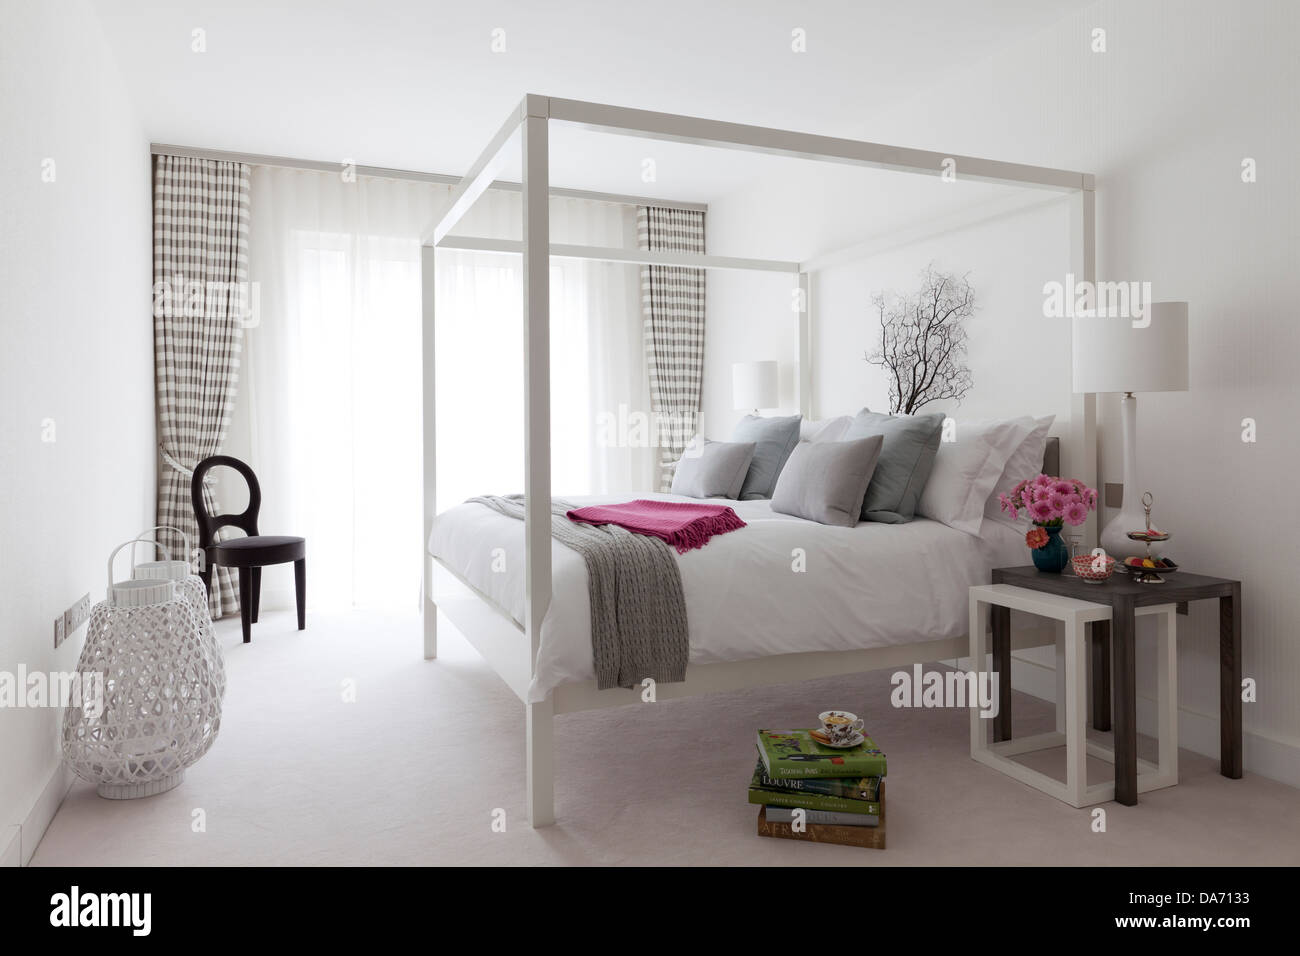 Four poster baed - Stock Image